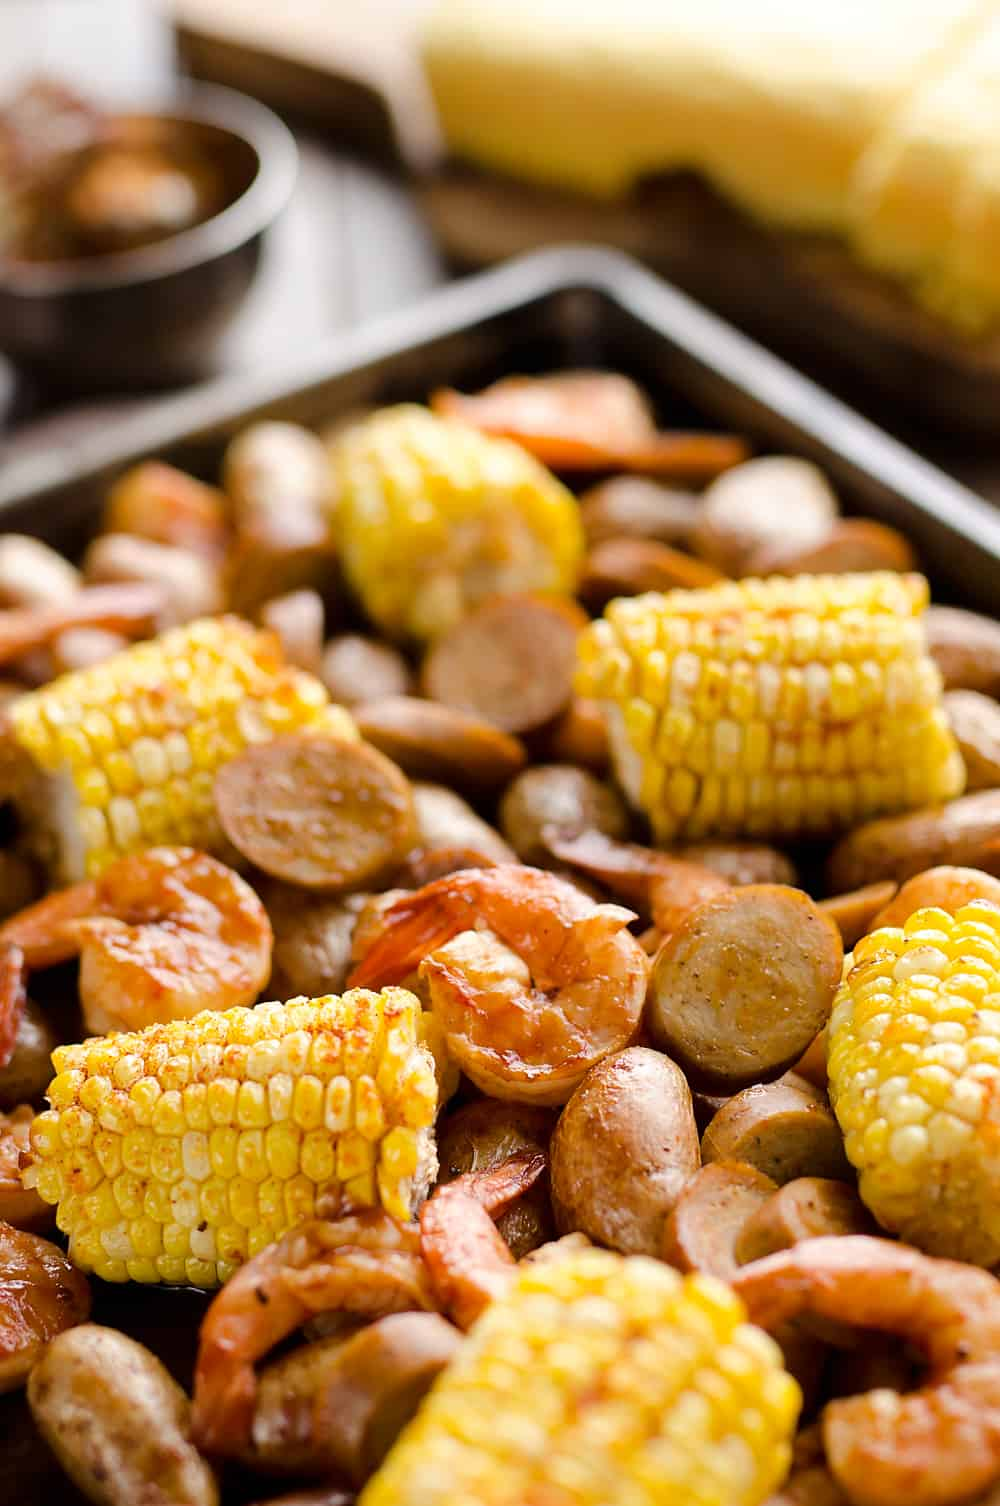 BBQ Shrimp & Sausage Sheet Pan Dinner is an easy and wholesome recipe perfect for a weeknight family dinner. Roasted sweet corn and potatoes are paired with BBQ shrimp and Gold'n Plump Hickory Smoked Sliced Chicken Sausage for a comforting low-fat meal!